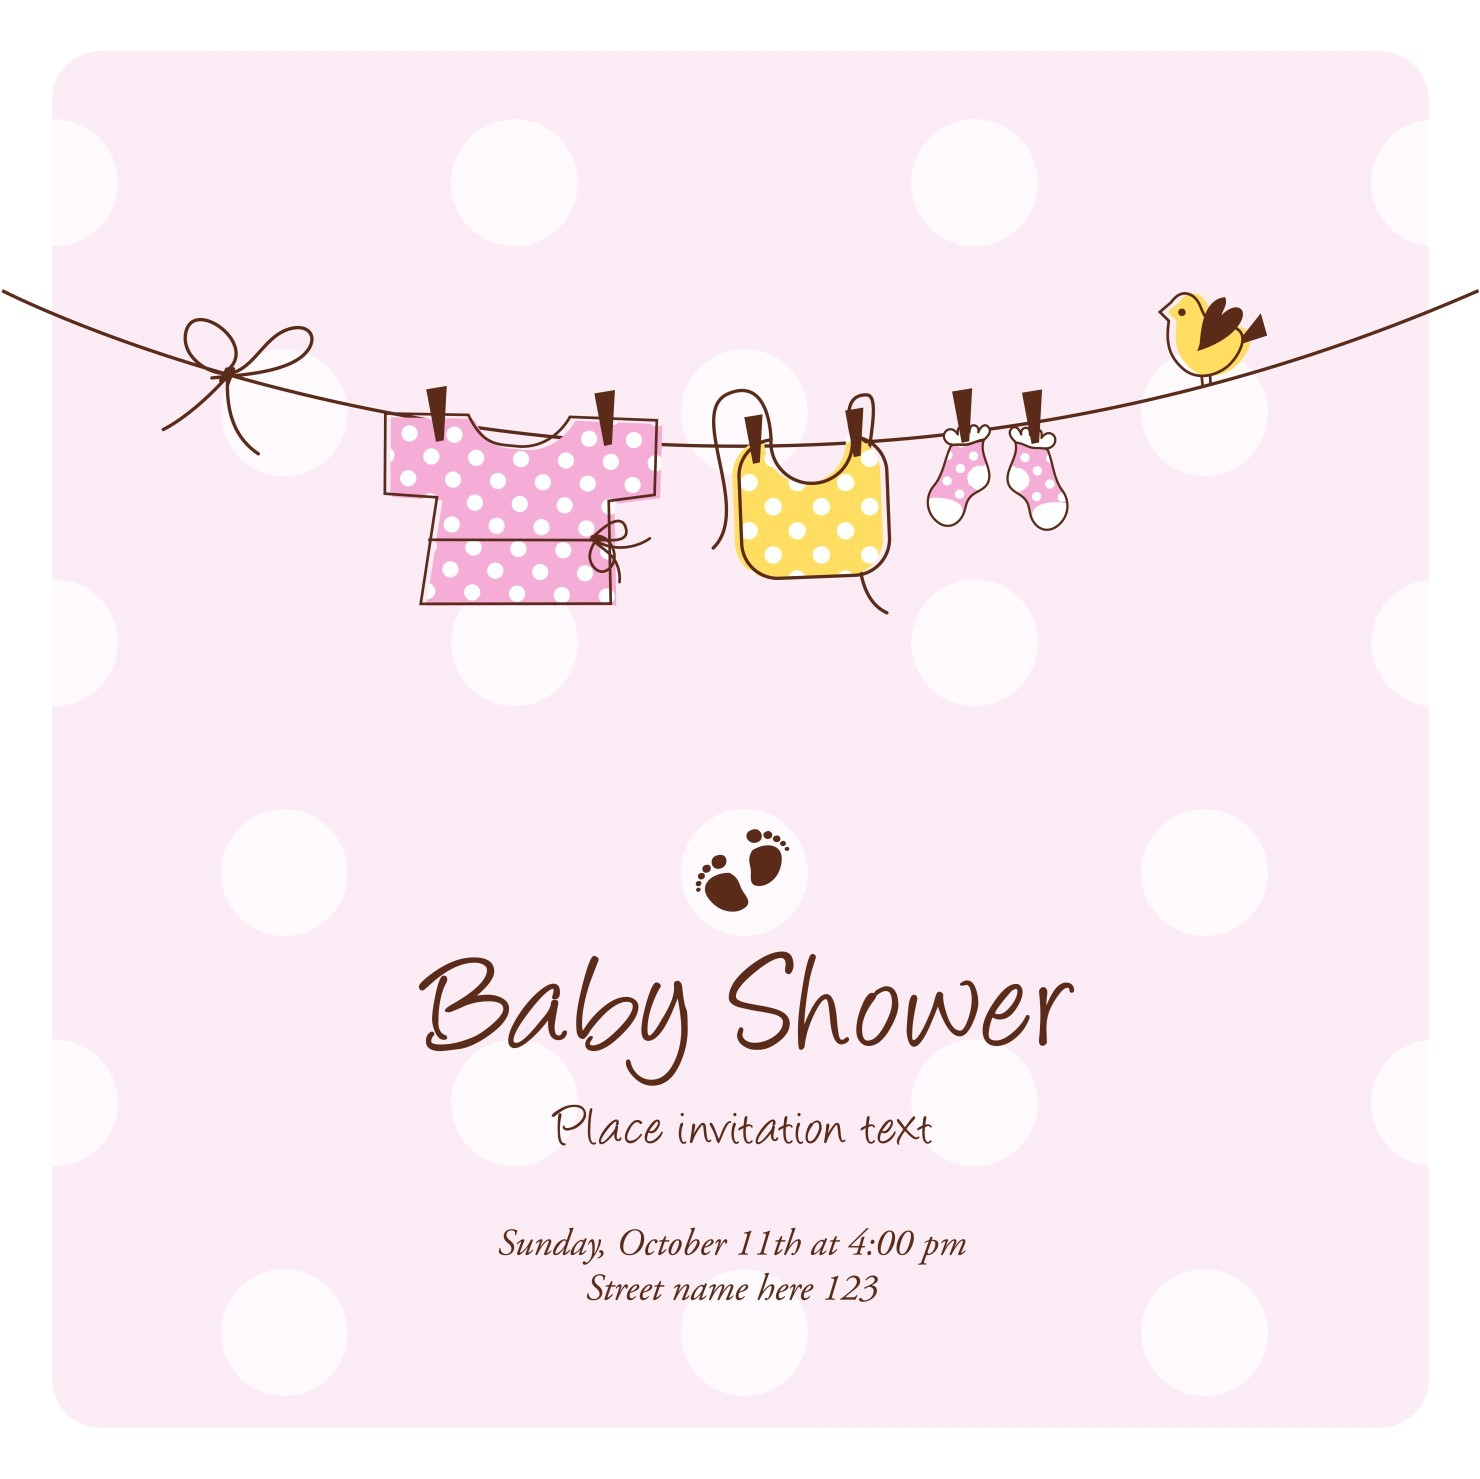 Baby Shower Invitation Cards for Girls Baby Shower Invitations the 25 Best Cards • Elsoar